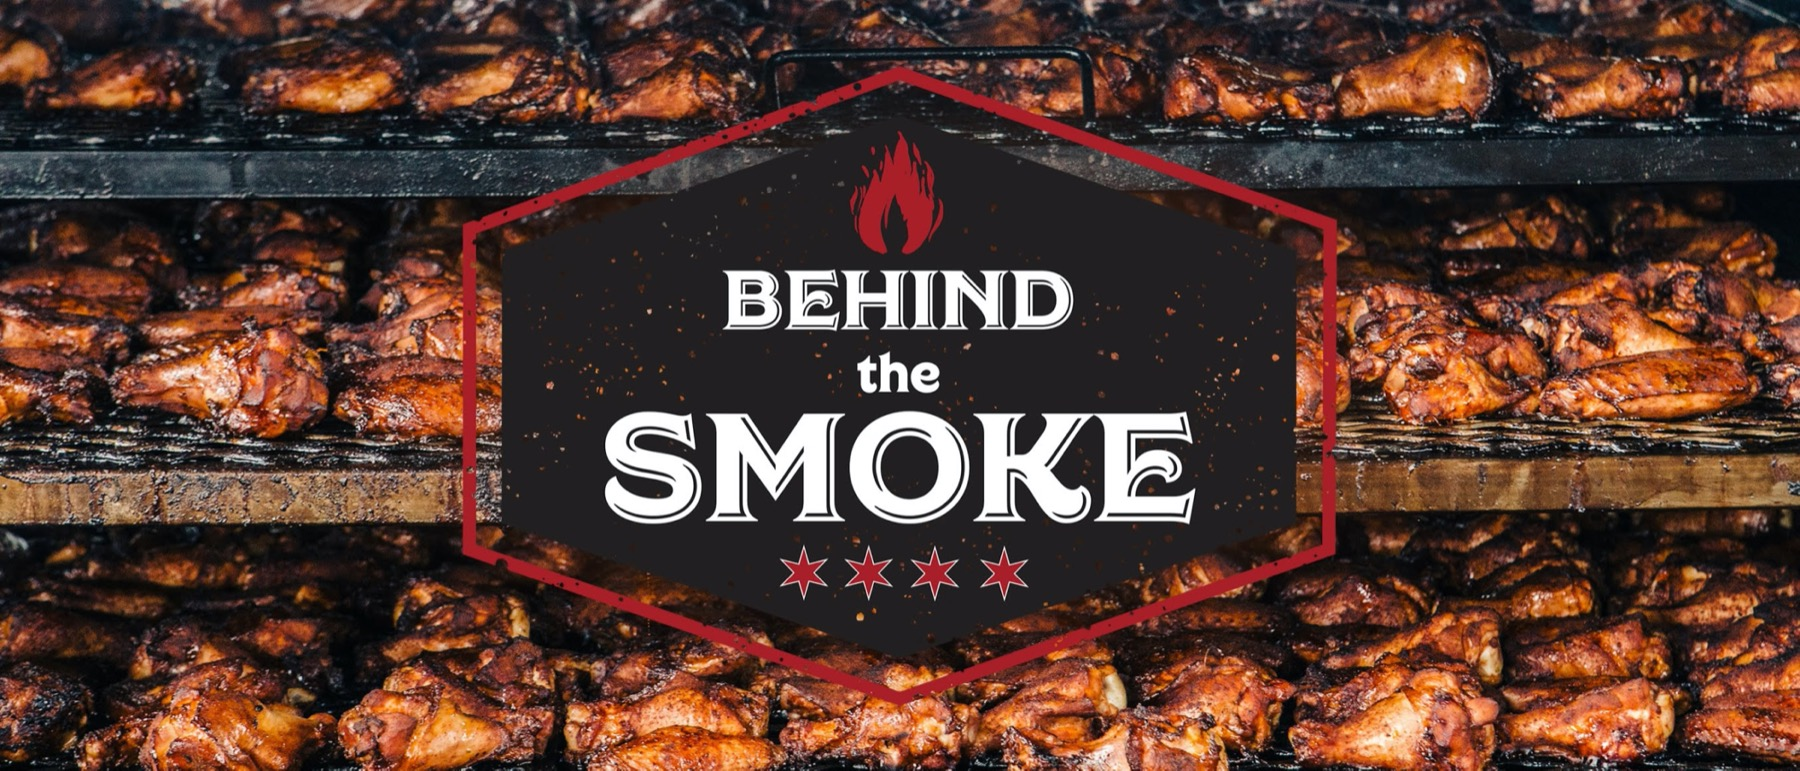 Behind the smoke: Meet the Windy City Smokeout pitmasters